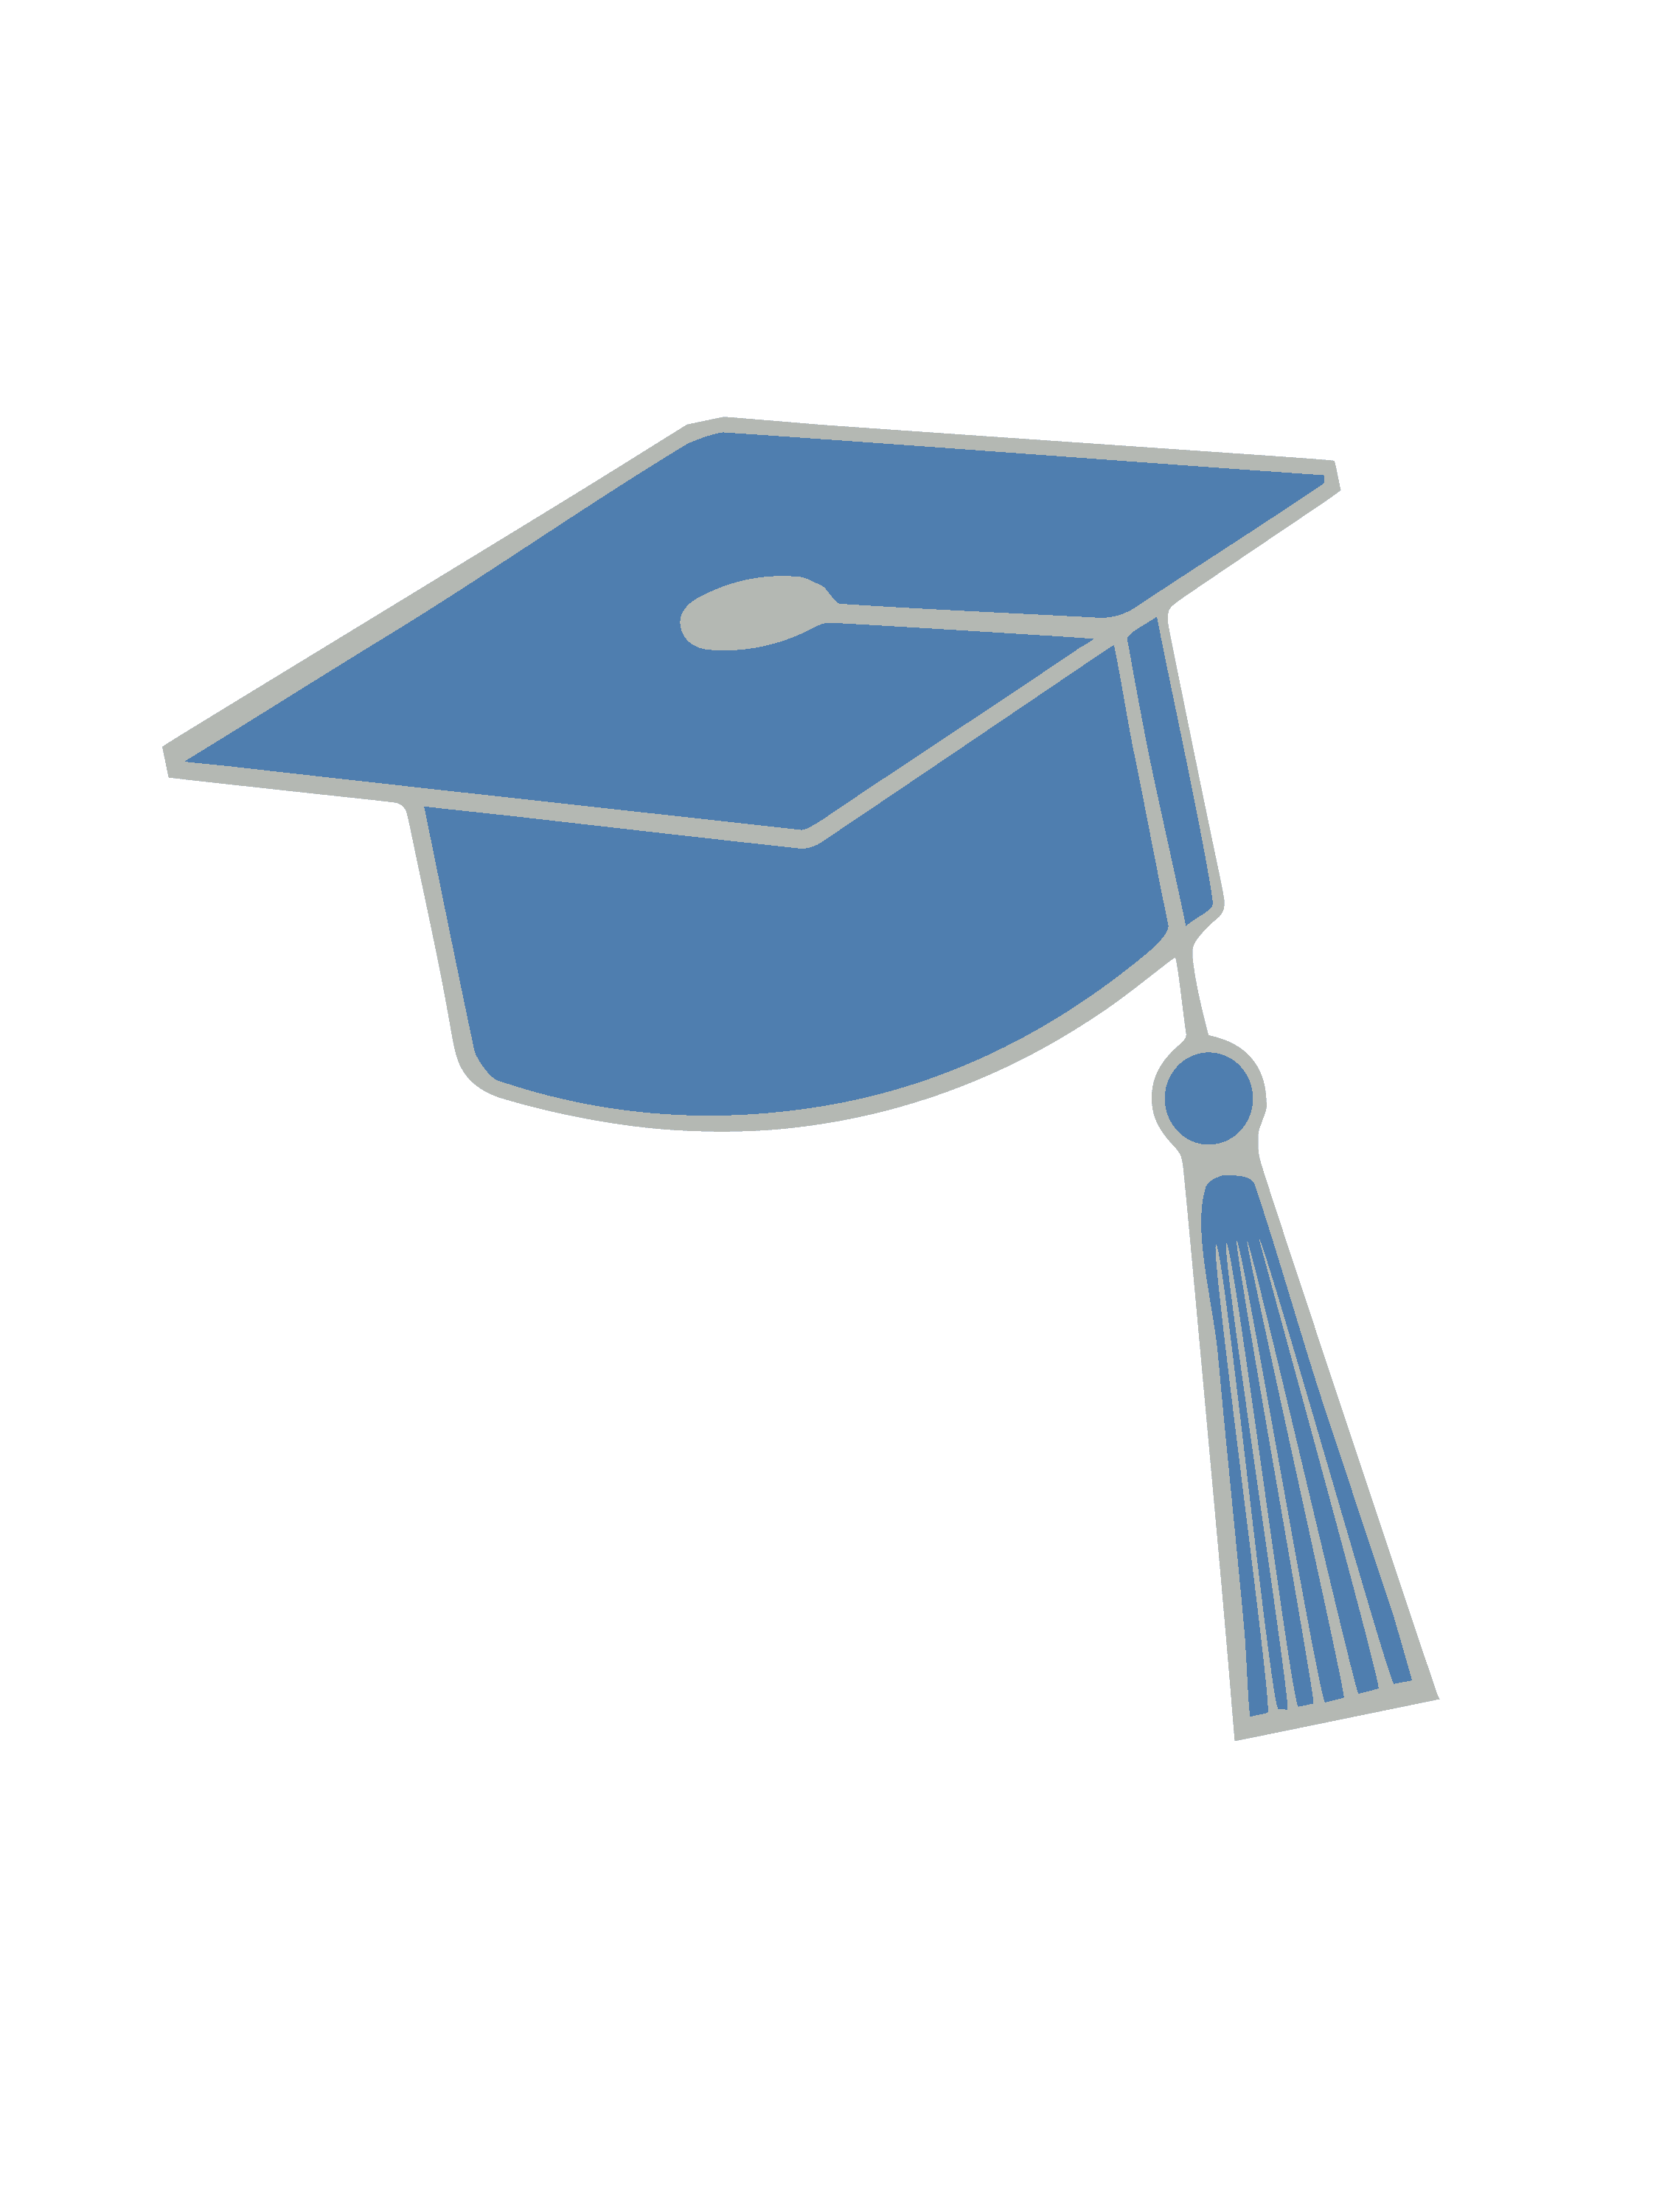 Blue Graduation Hat Png | www.imgkid.com - The Image Kid ...